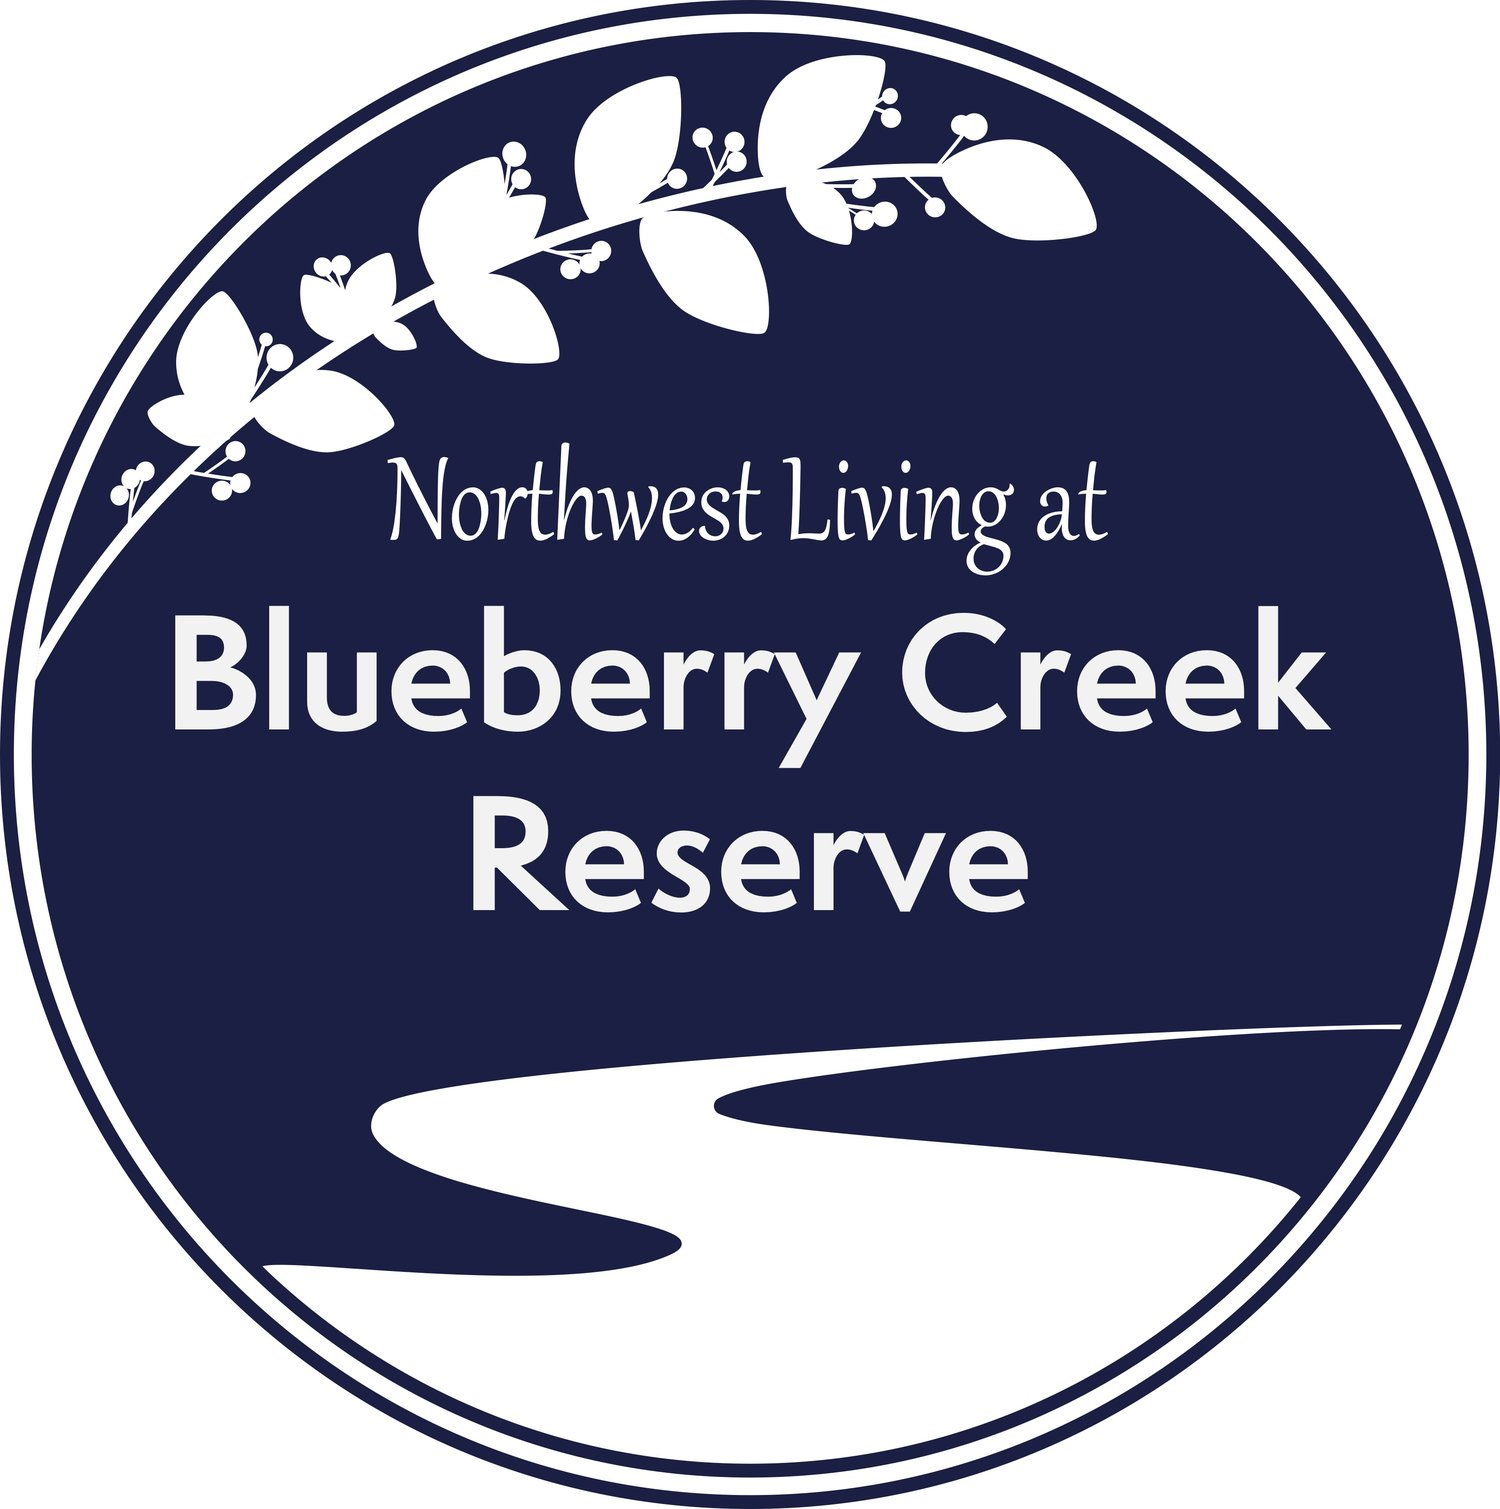 Northwest Living at Blueberry Creek Reserve